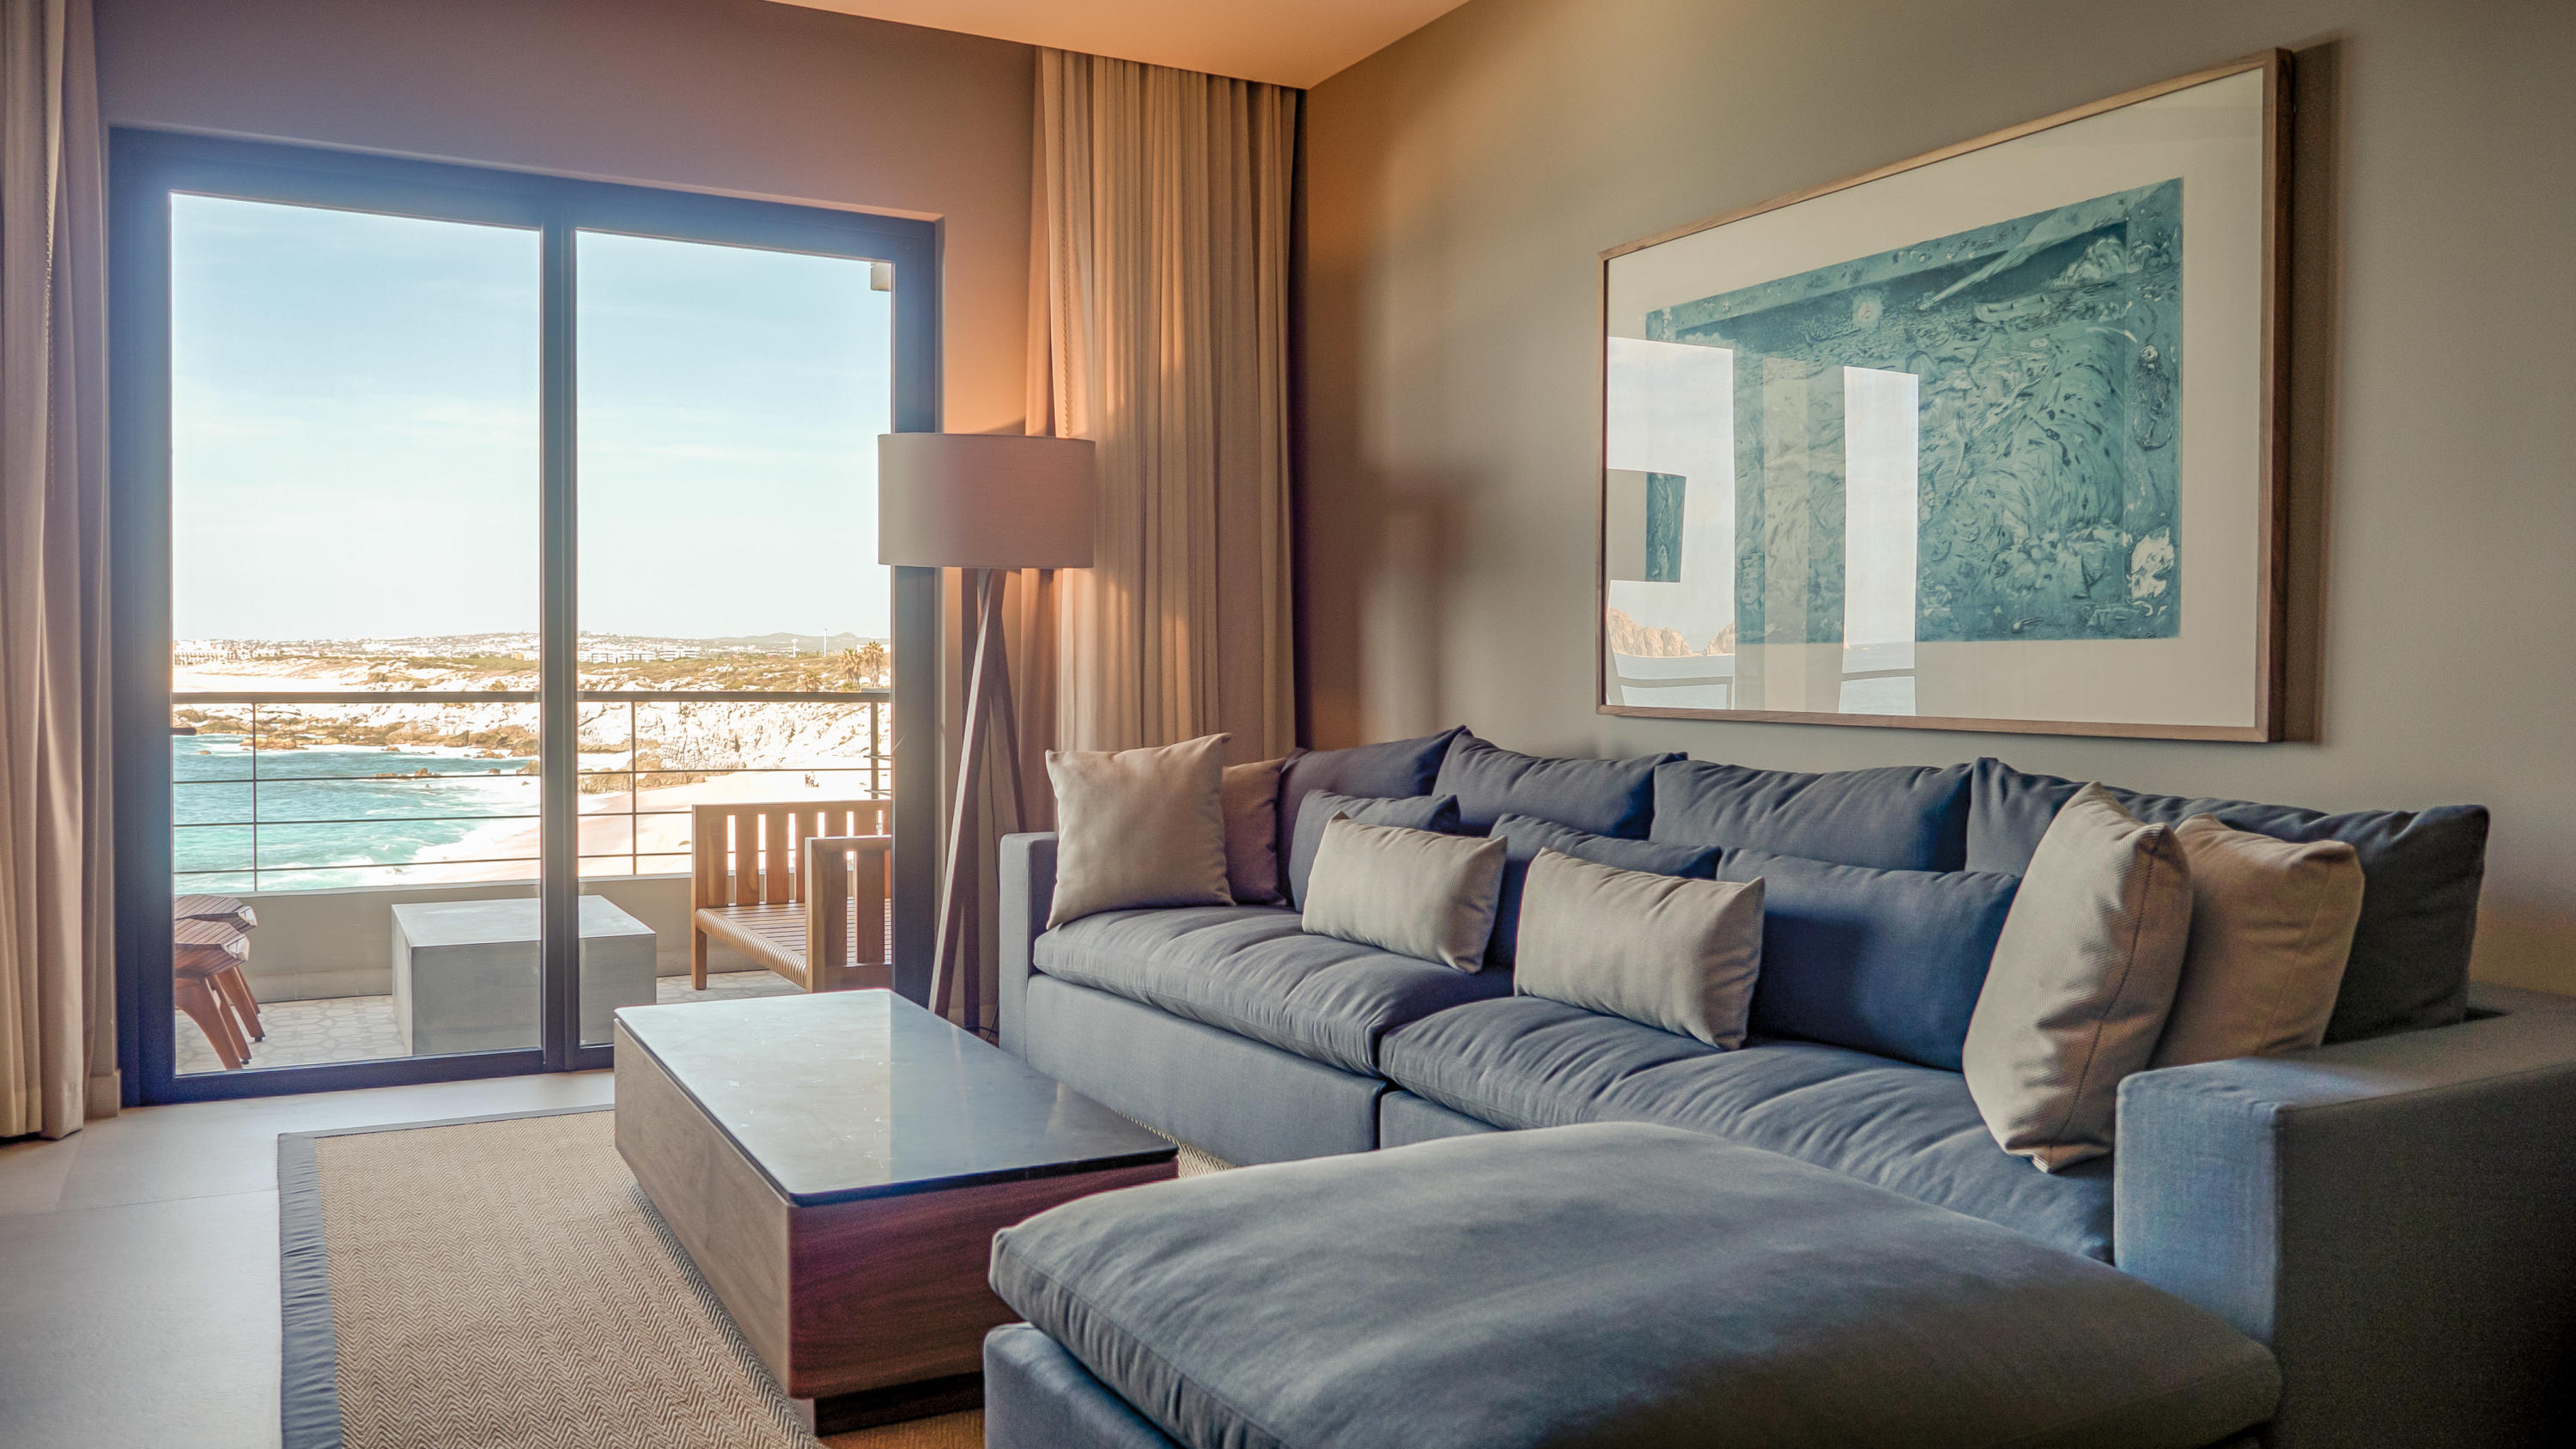 The Cape, a Thompson Hotel, CSL-Corr. Oceanside